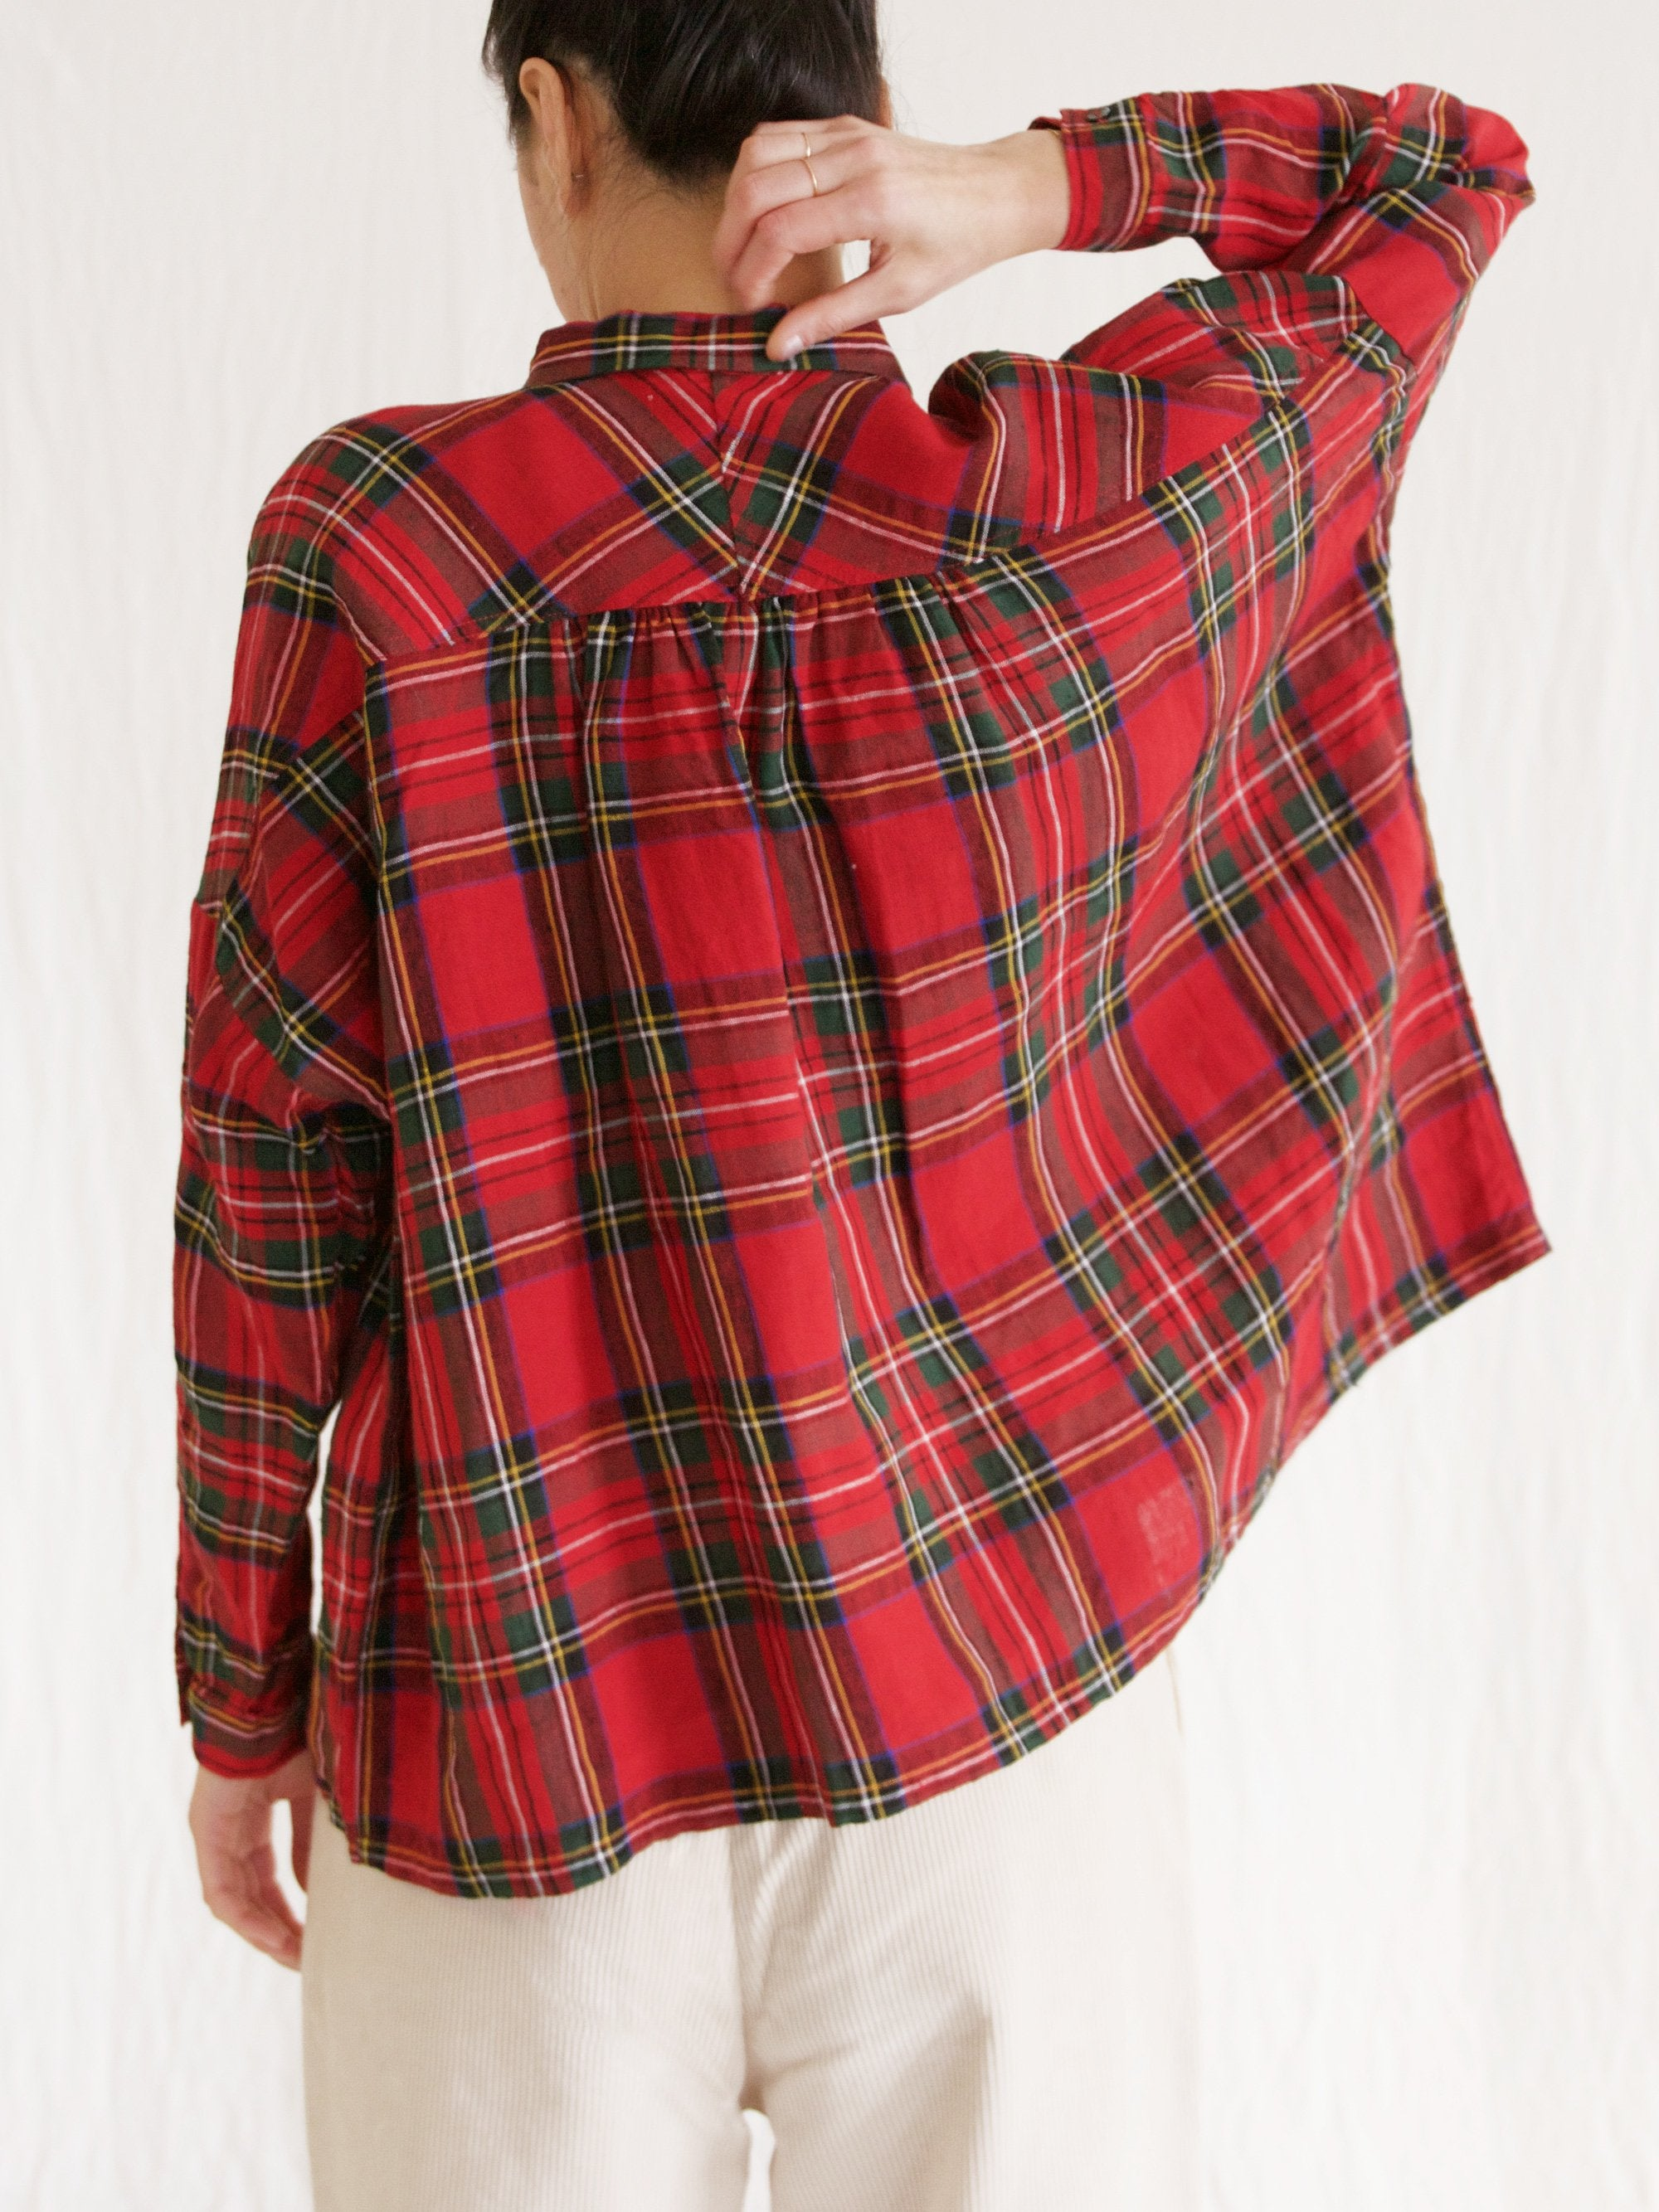 Namu Shop - Ichi Antiquites Linen Tartan Check Gather Shirt - Red